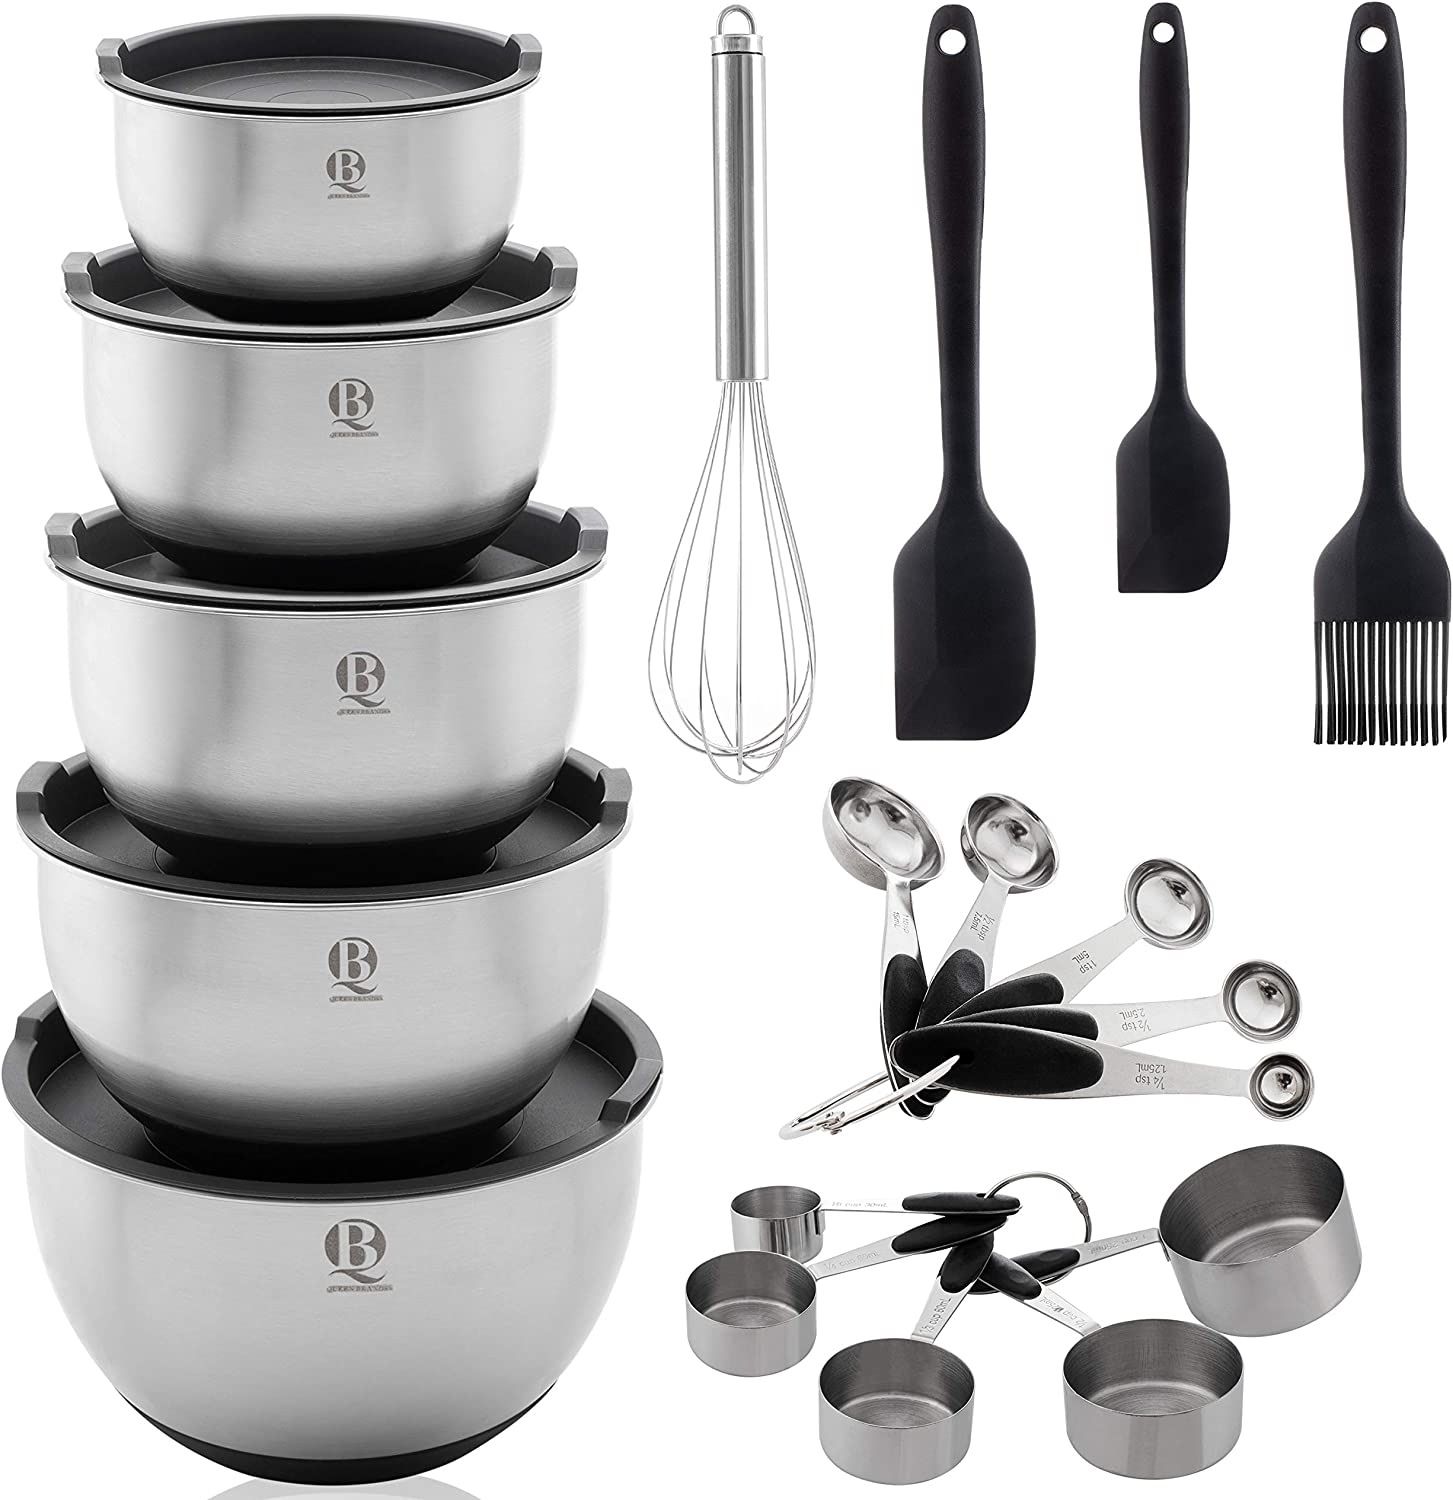 Queen Brands Mixing Bowls set of 5 - Stainless Steel Nesting Bowls with Airtight Lids Measurements Lines & Silicone Non-Slip Bottoms - Measuring Cups & Spoons Stackable Great for Baking 19 pieces